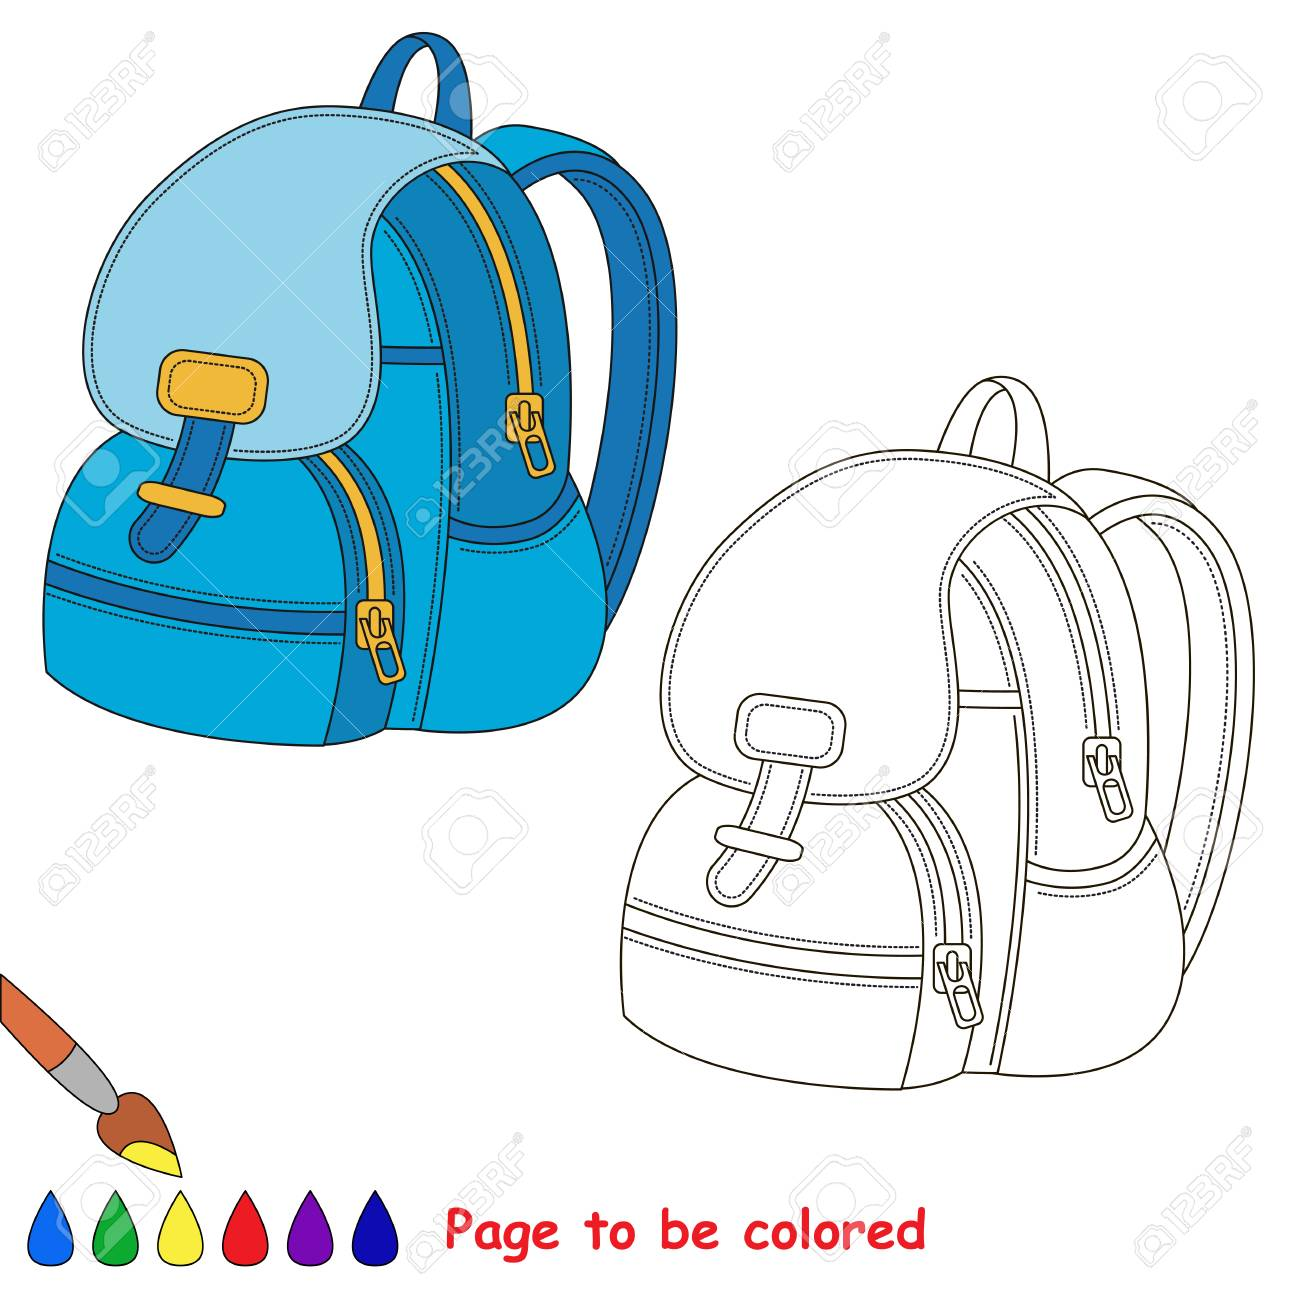 Blue Backpack To Be Colored, The Coloring Book To Educate Preschool ...